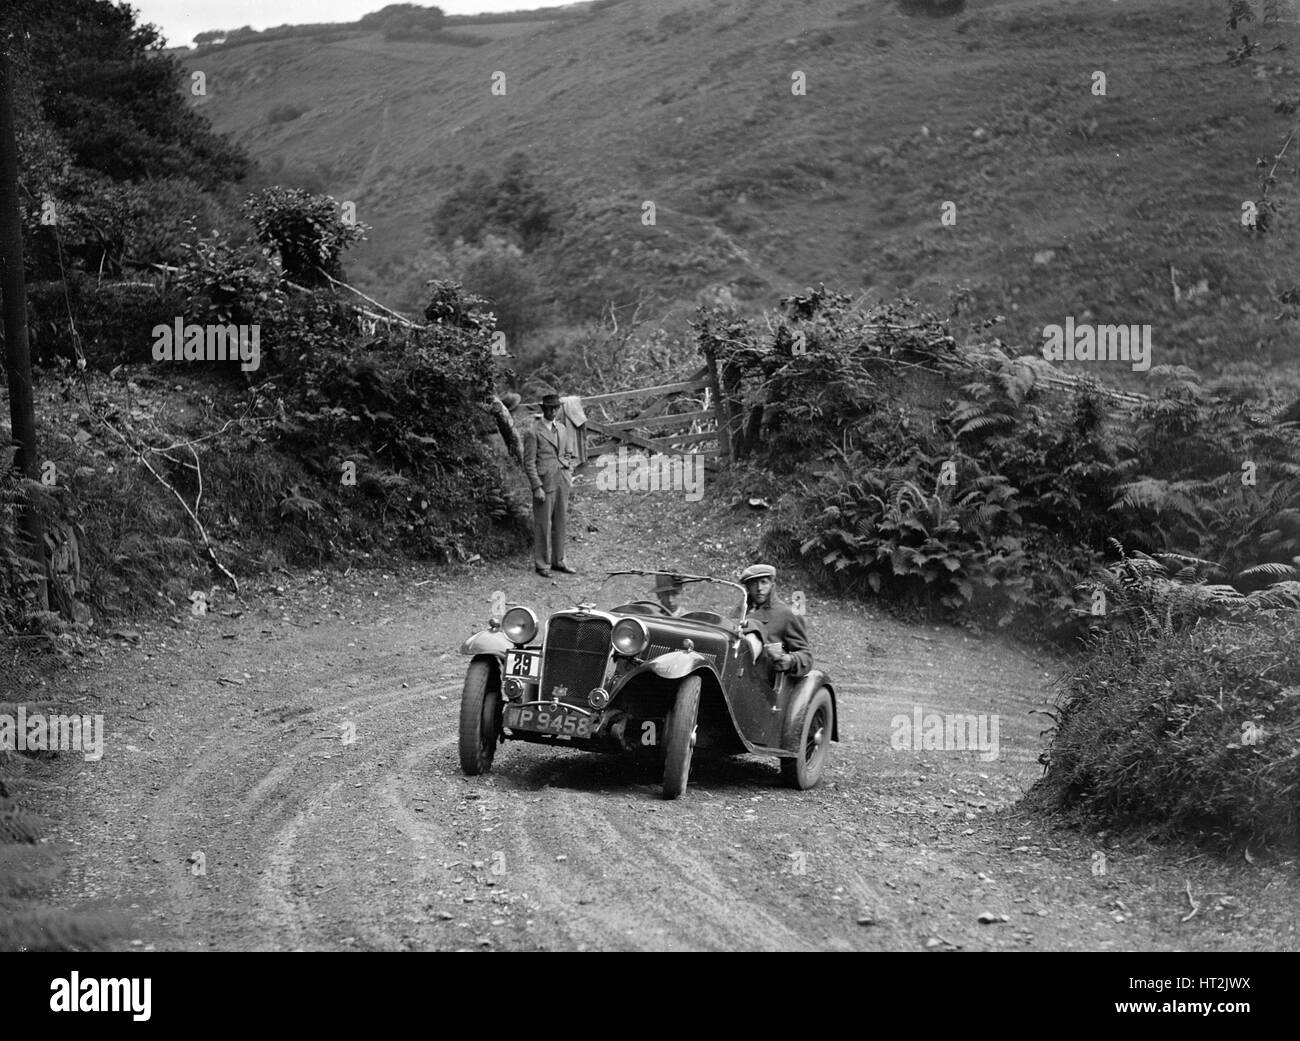 1935 Singer Le Mans 2-seater taking part in a motoring trial, late 1930s. Artist: Bill Brunell. - Stock Image